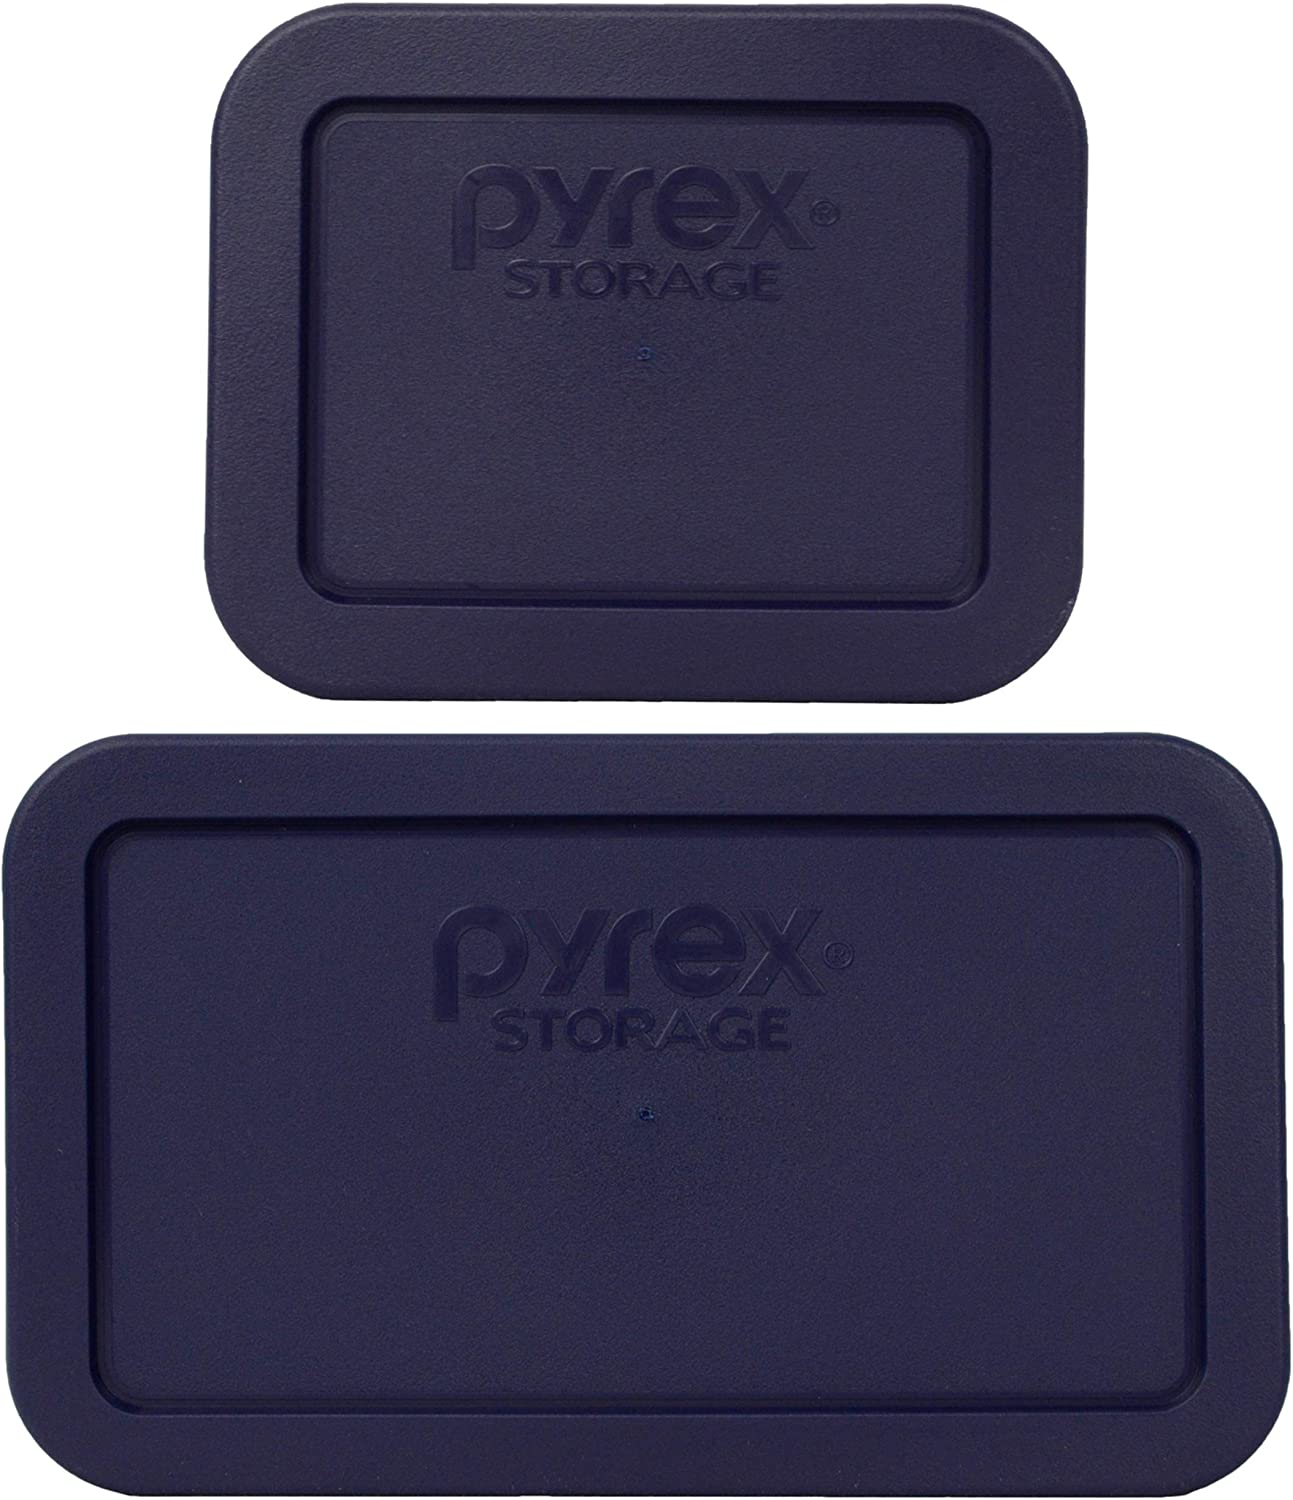 Pyrex 1 7213 1.9 Cup Lids Challenge the lowest price 7214 Cheap mail order shopping 4.8 Rectangle Blue